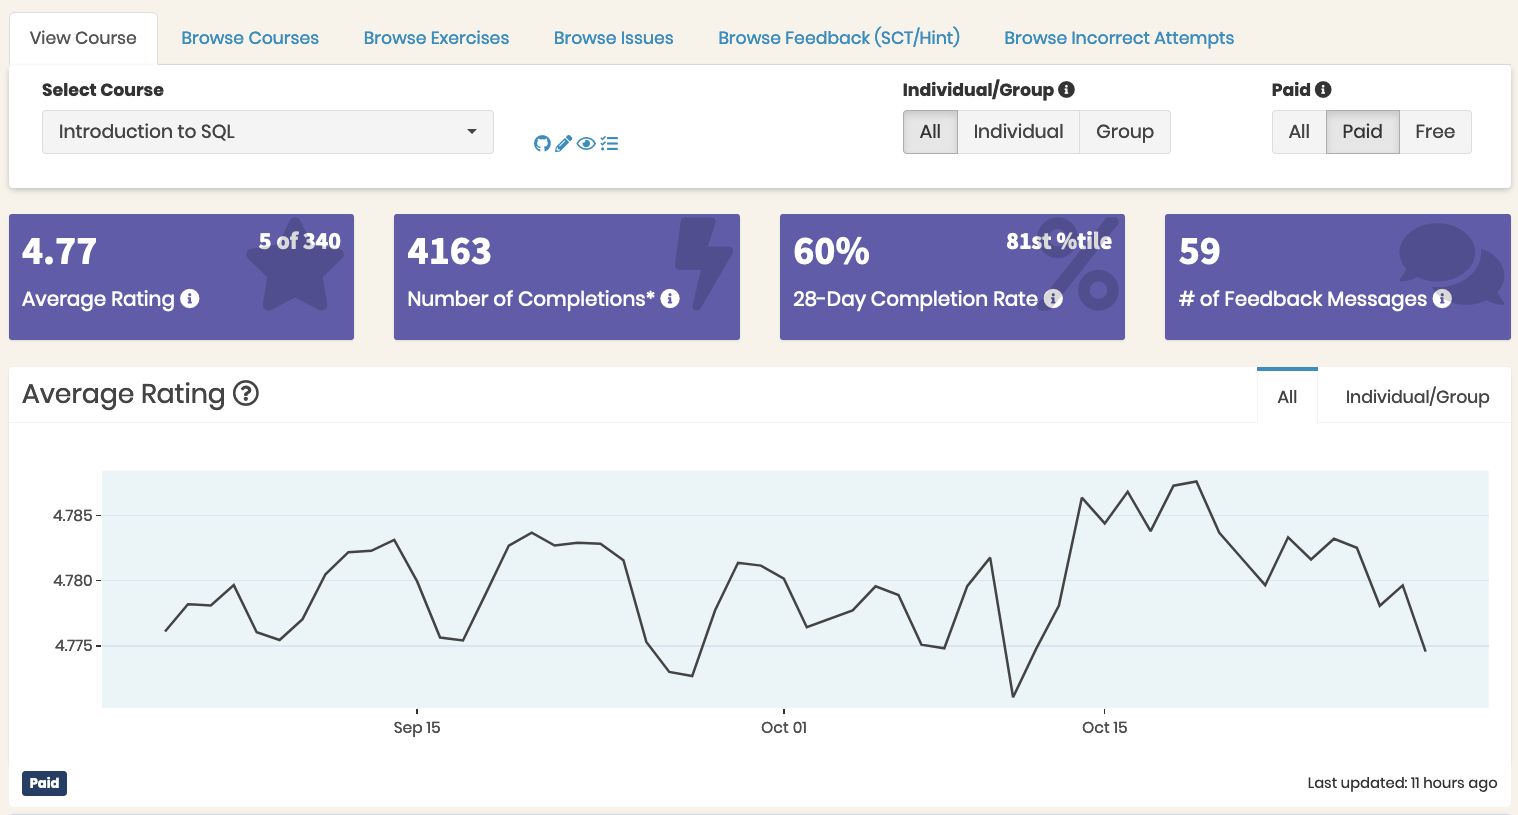 Screeshot of course-lvel metrcis for Introduction to SQL, from the Content Dashboard. The four metrics shown are